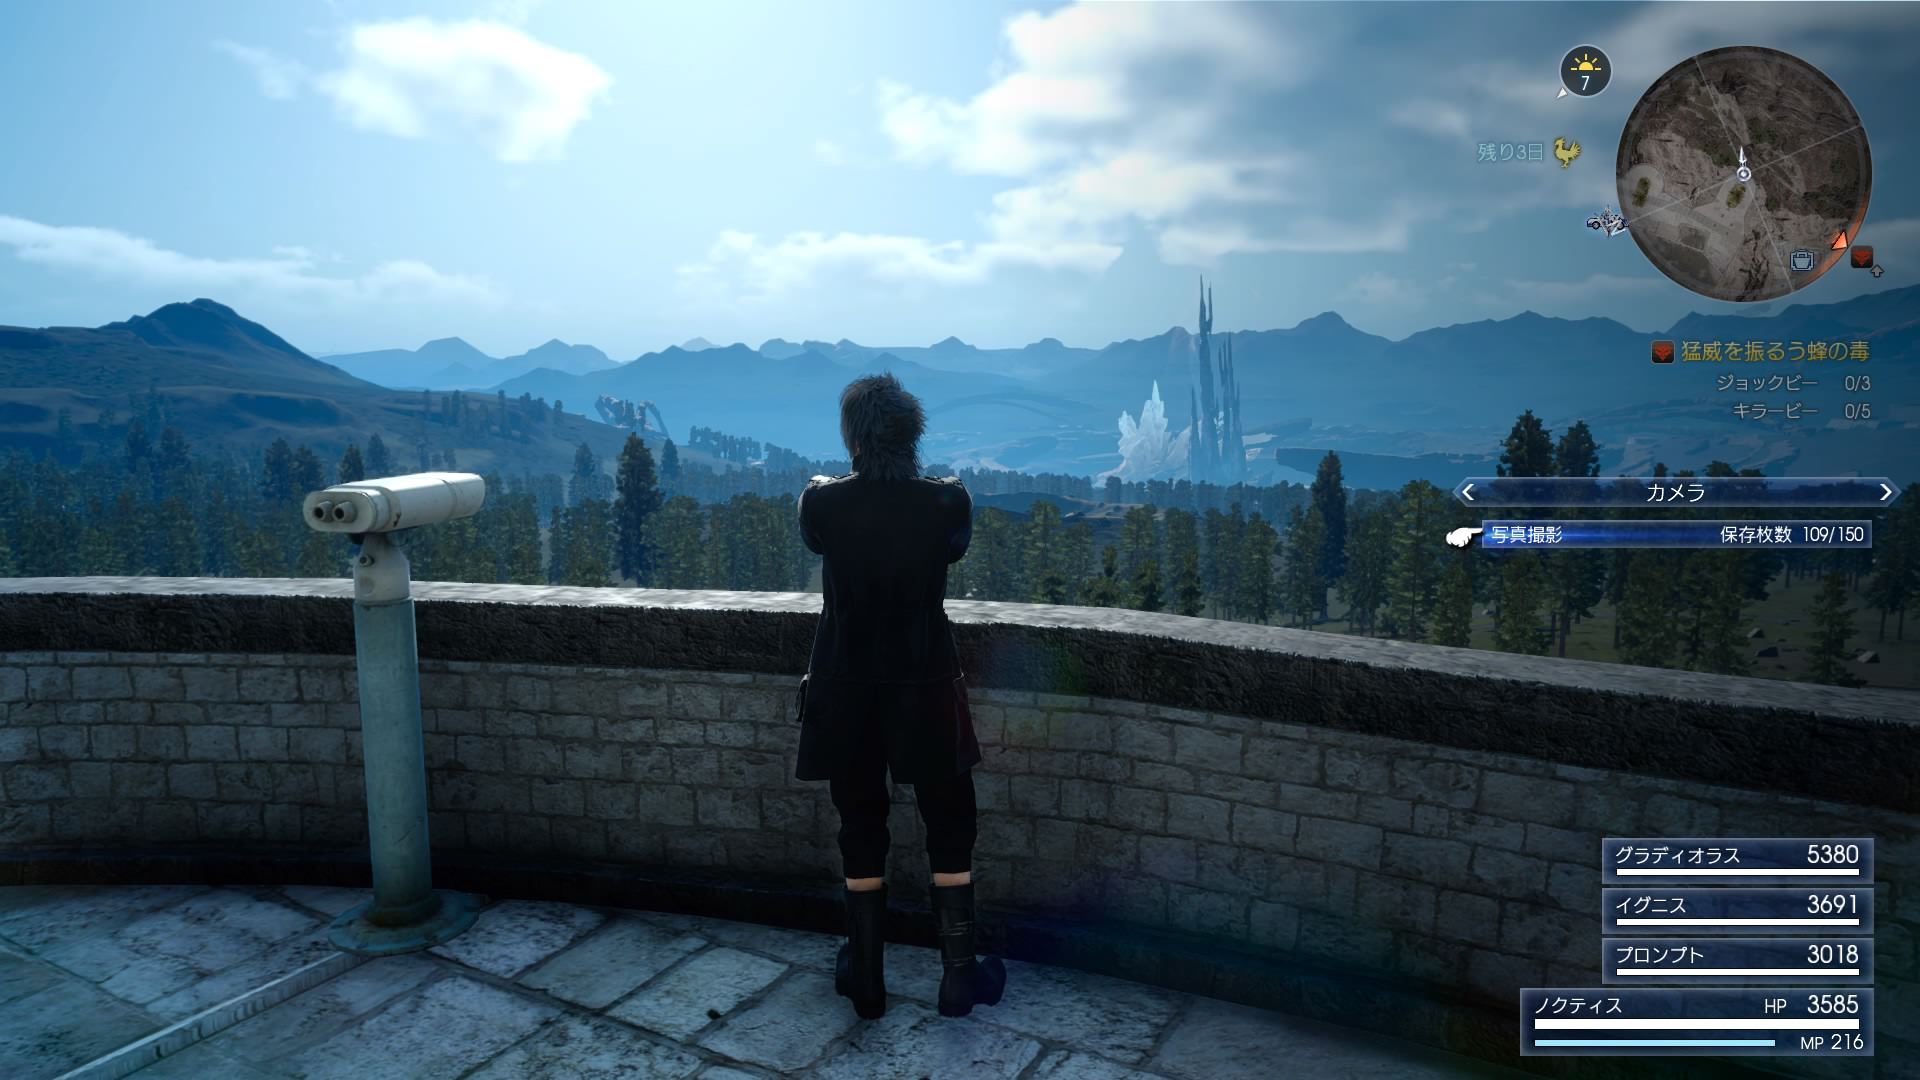 Ff15 self taking picture 3